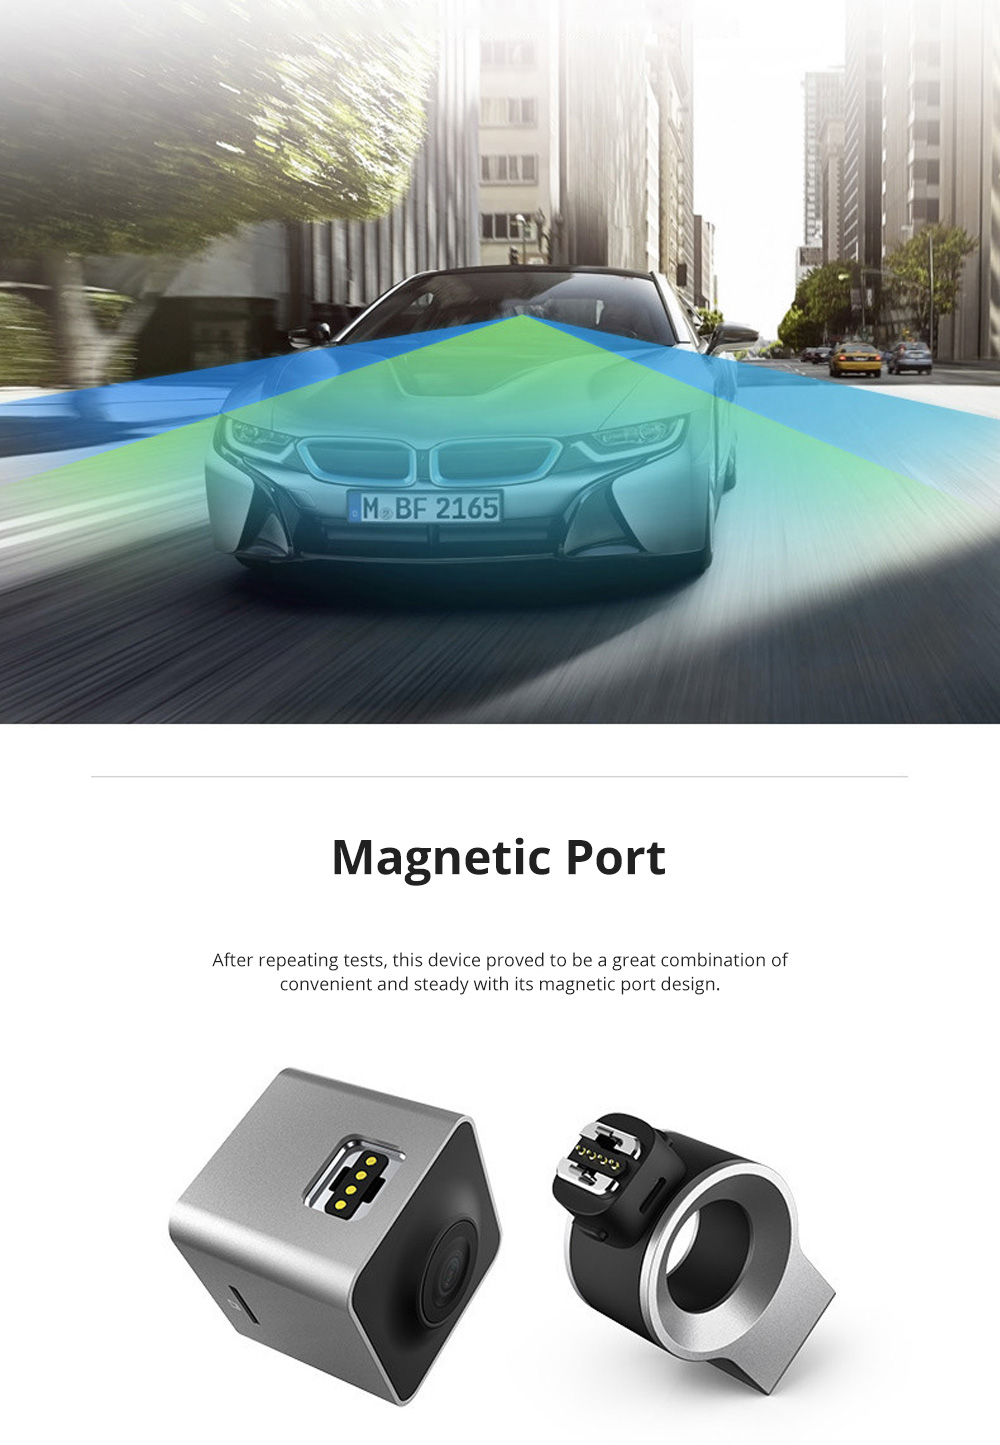 ROCK Multiple Functional Panorama HD 24 Hours Car DVR Smart Night Vision Automobile Data Recorder Monitoring GPS Speed Detection Recorder 6